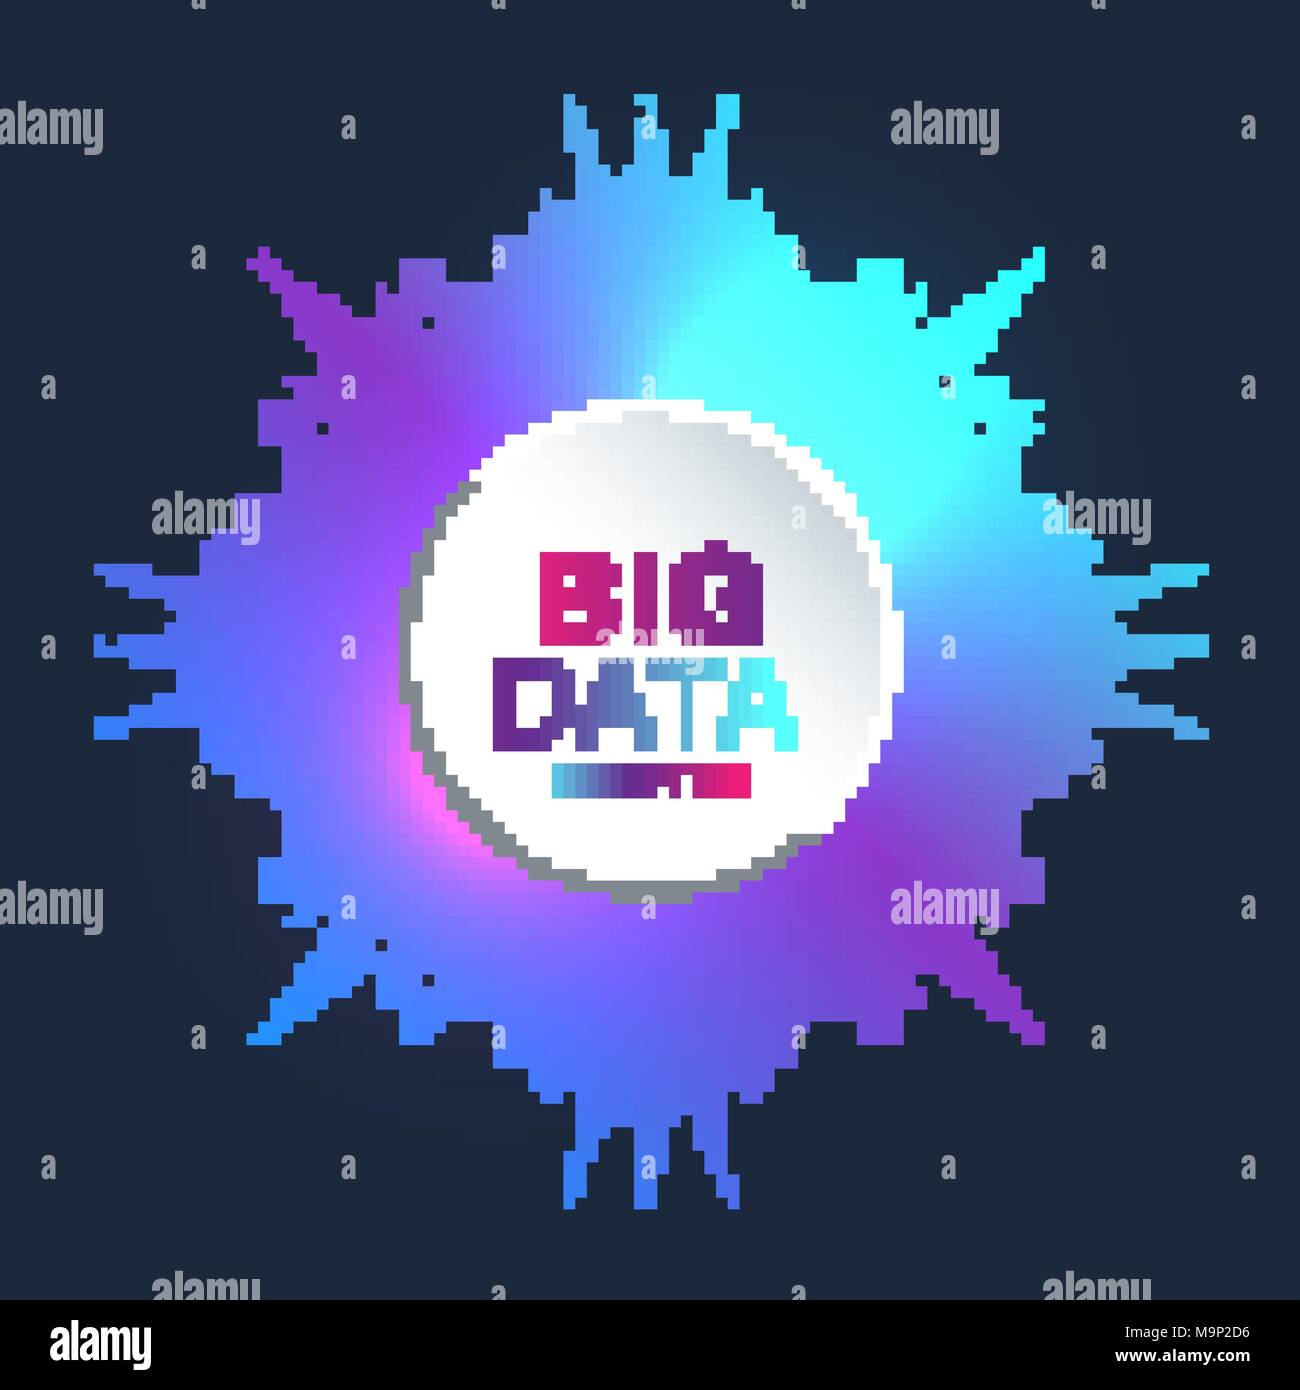 Fractal element with connected line and dots. Virtual background communication or particle compounds. Global network connection. Digital data visualization. Vector illustration. - Stock Image